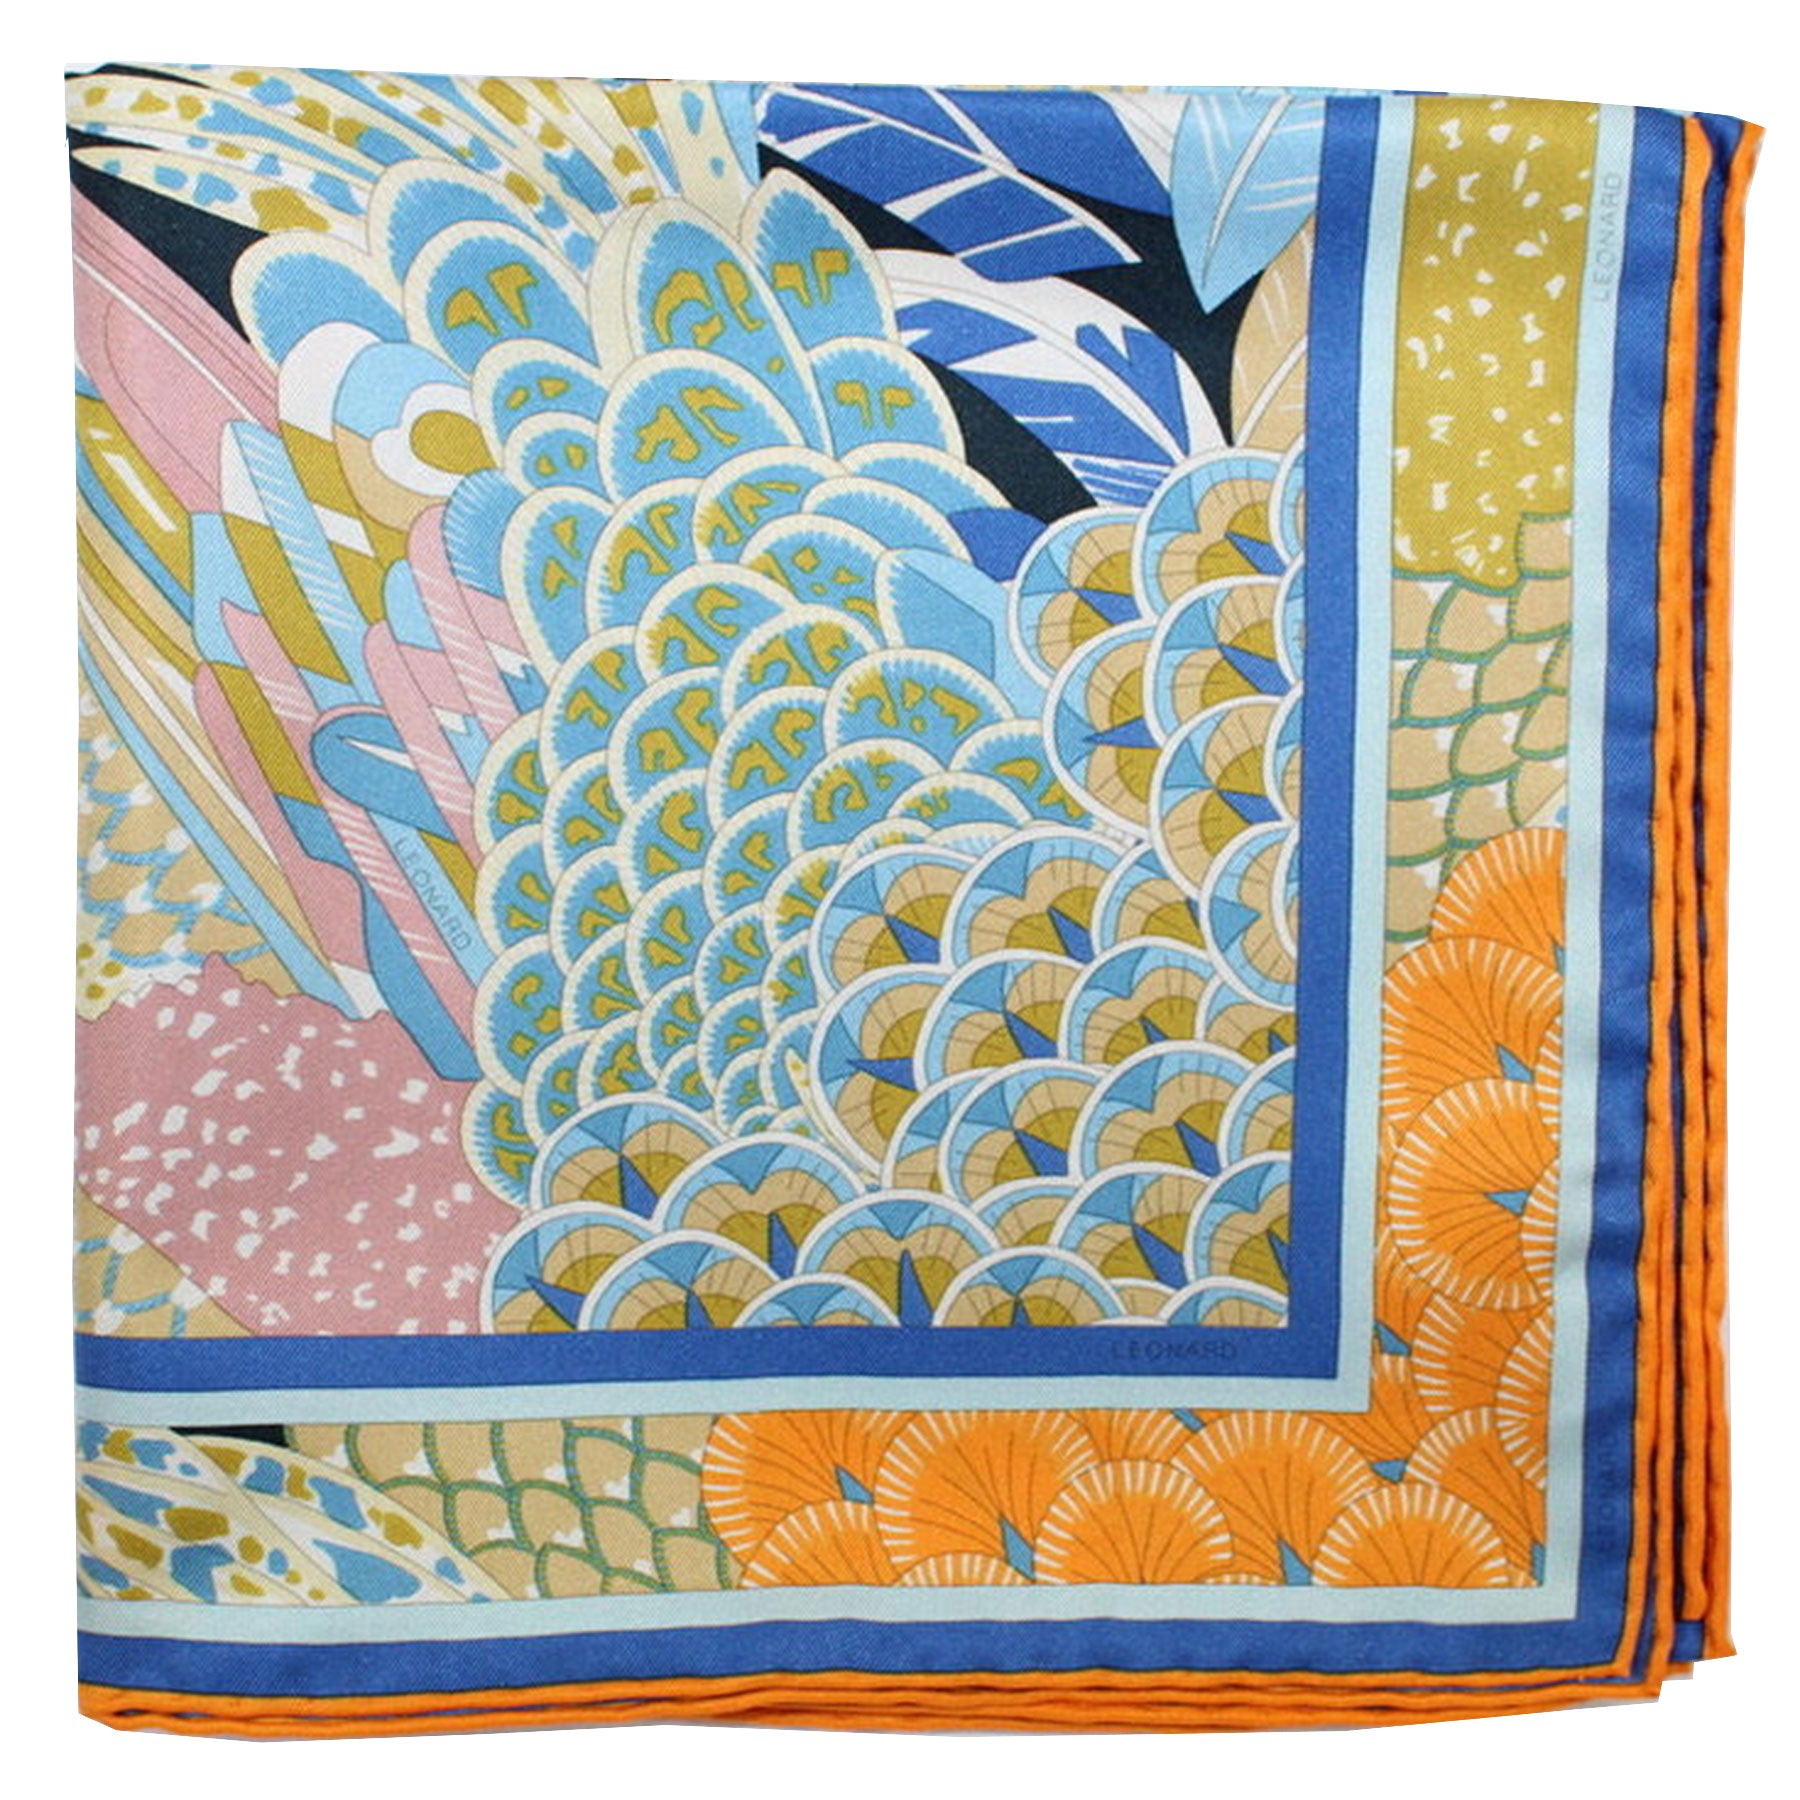 Leonard Paris Scarf Navy Royal Blue Orange Floral - Large Square Twill Silk Scarf